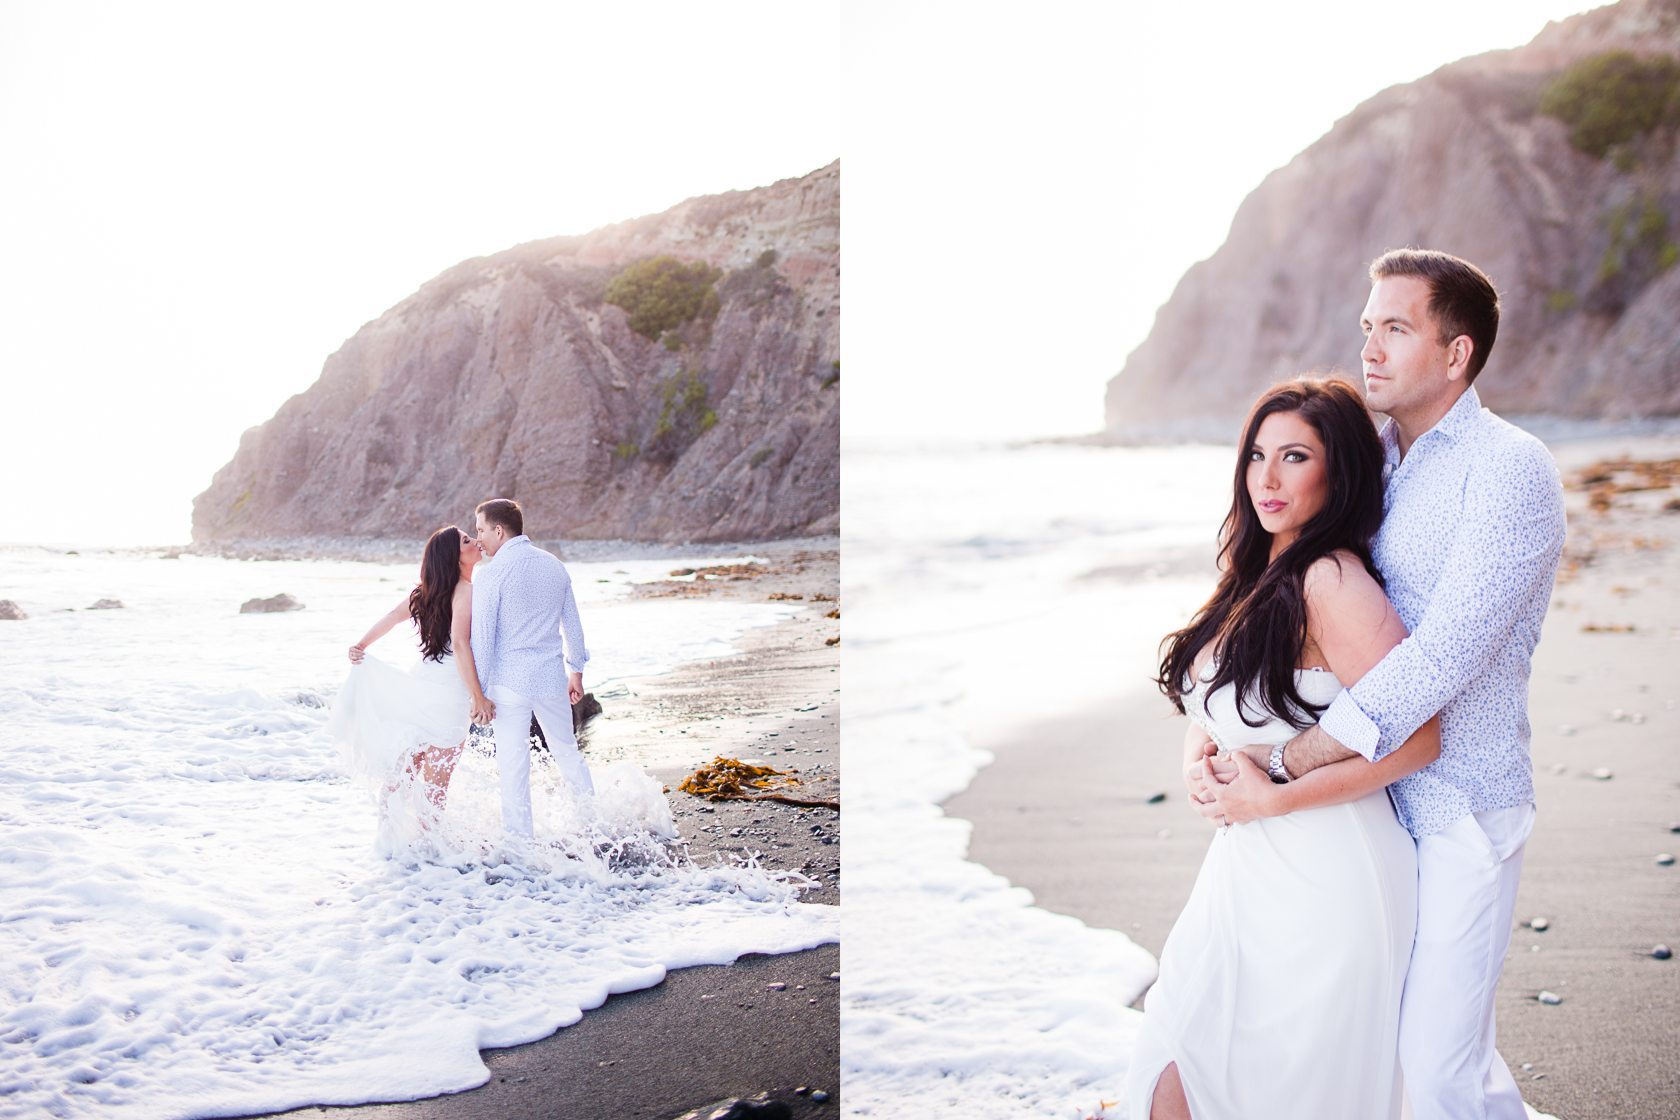 Mission_San_Juan_Capistrano_Engagement_Session_26.jpg